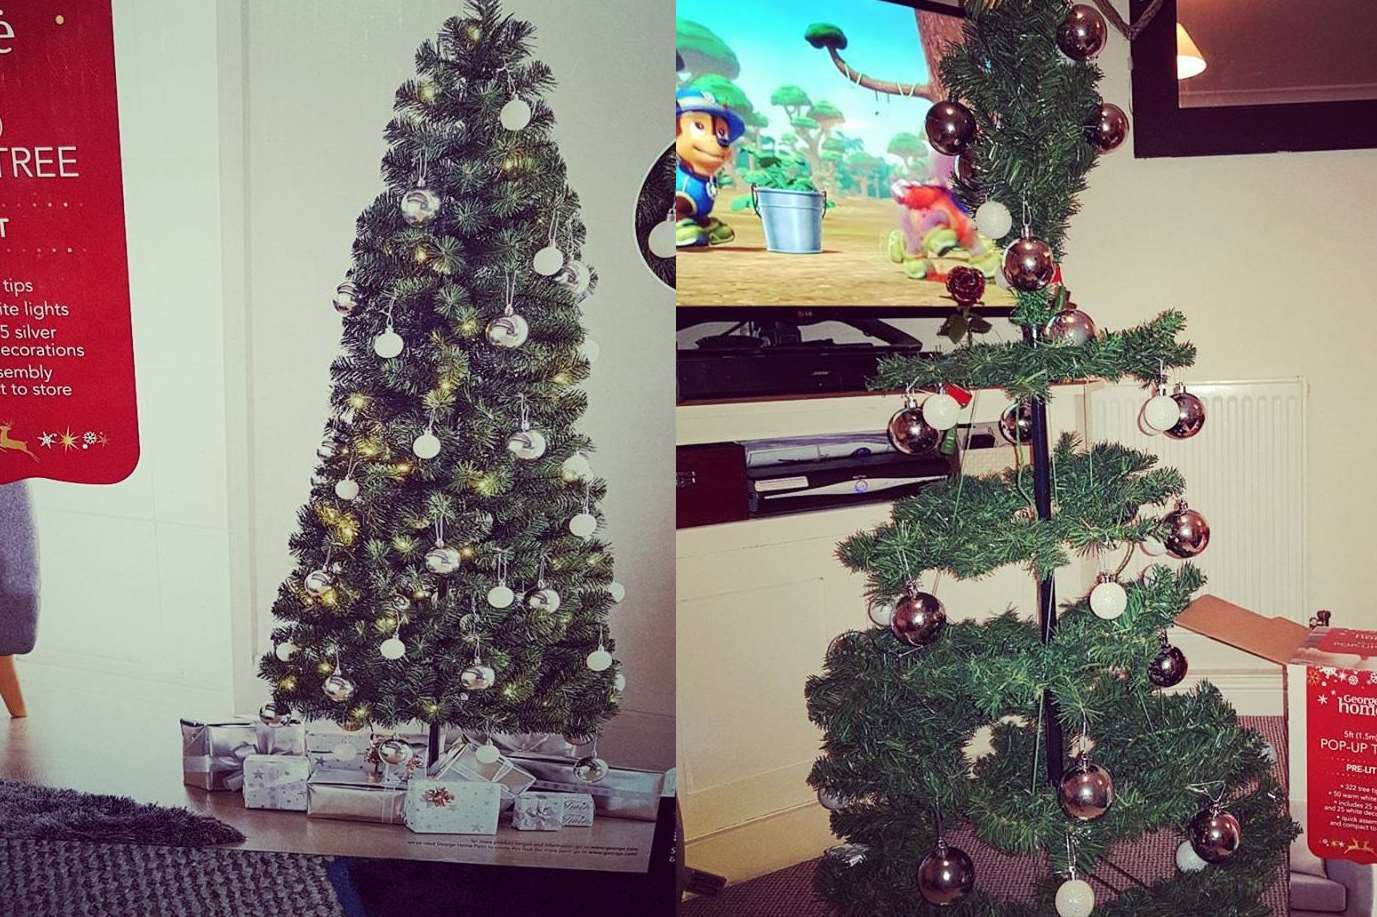 The advertised tree vs reality